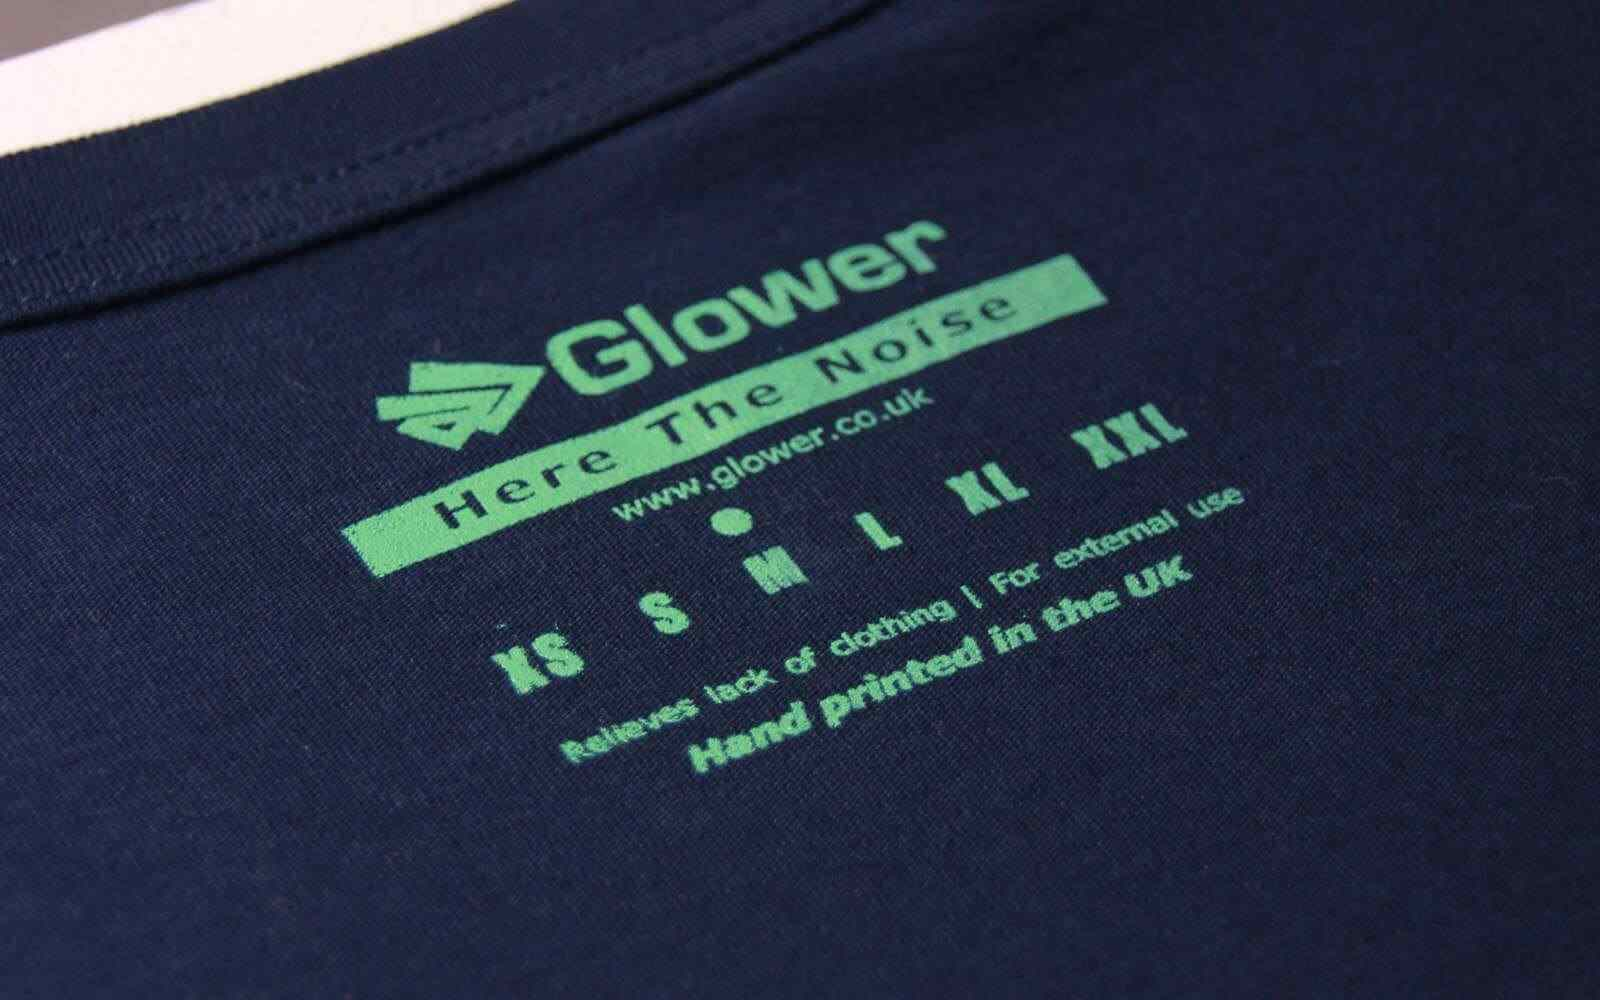 Glower printed neck label hand printed in UK